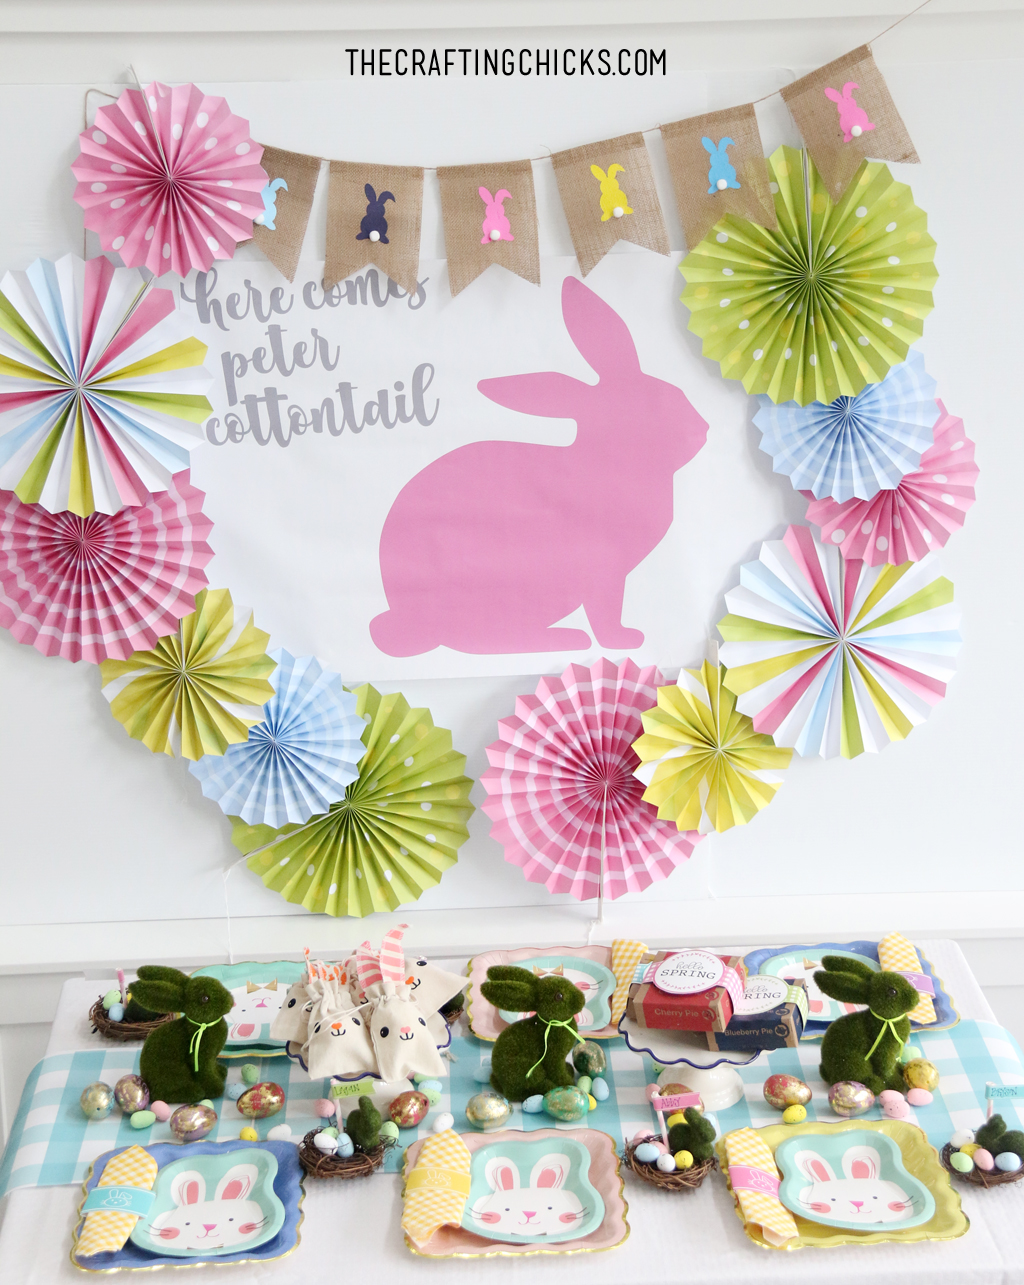 https://thecraftingchicks.com/wp-content/uploads/2020/03/cc-easter-kid-party-14.jpg